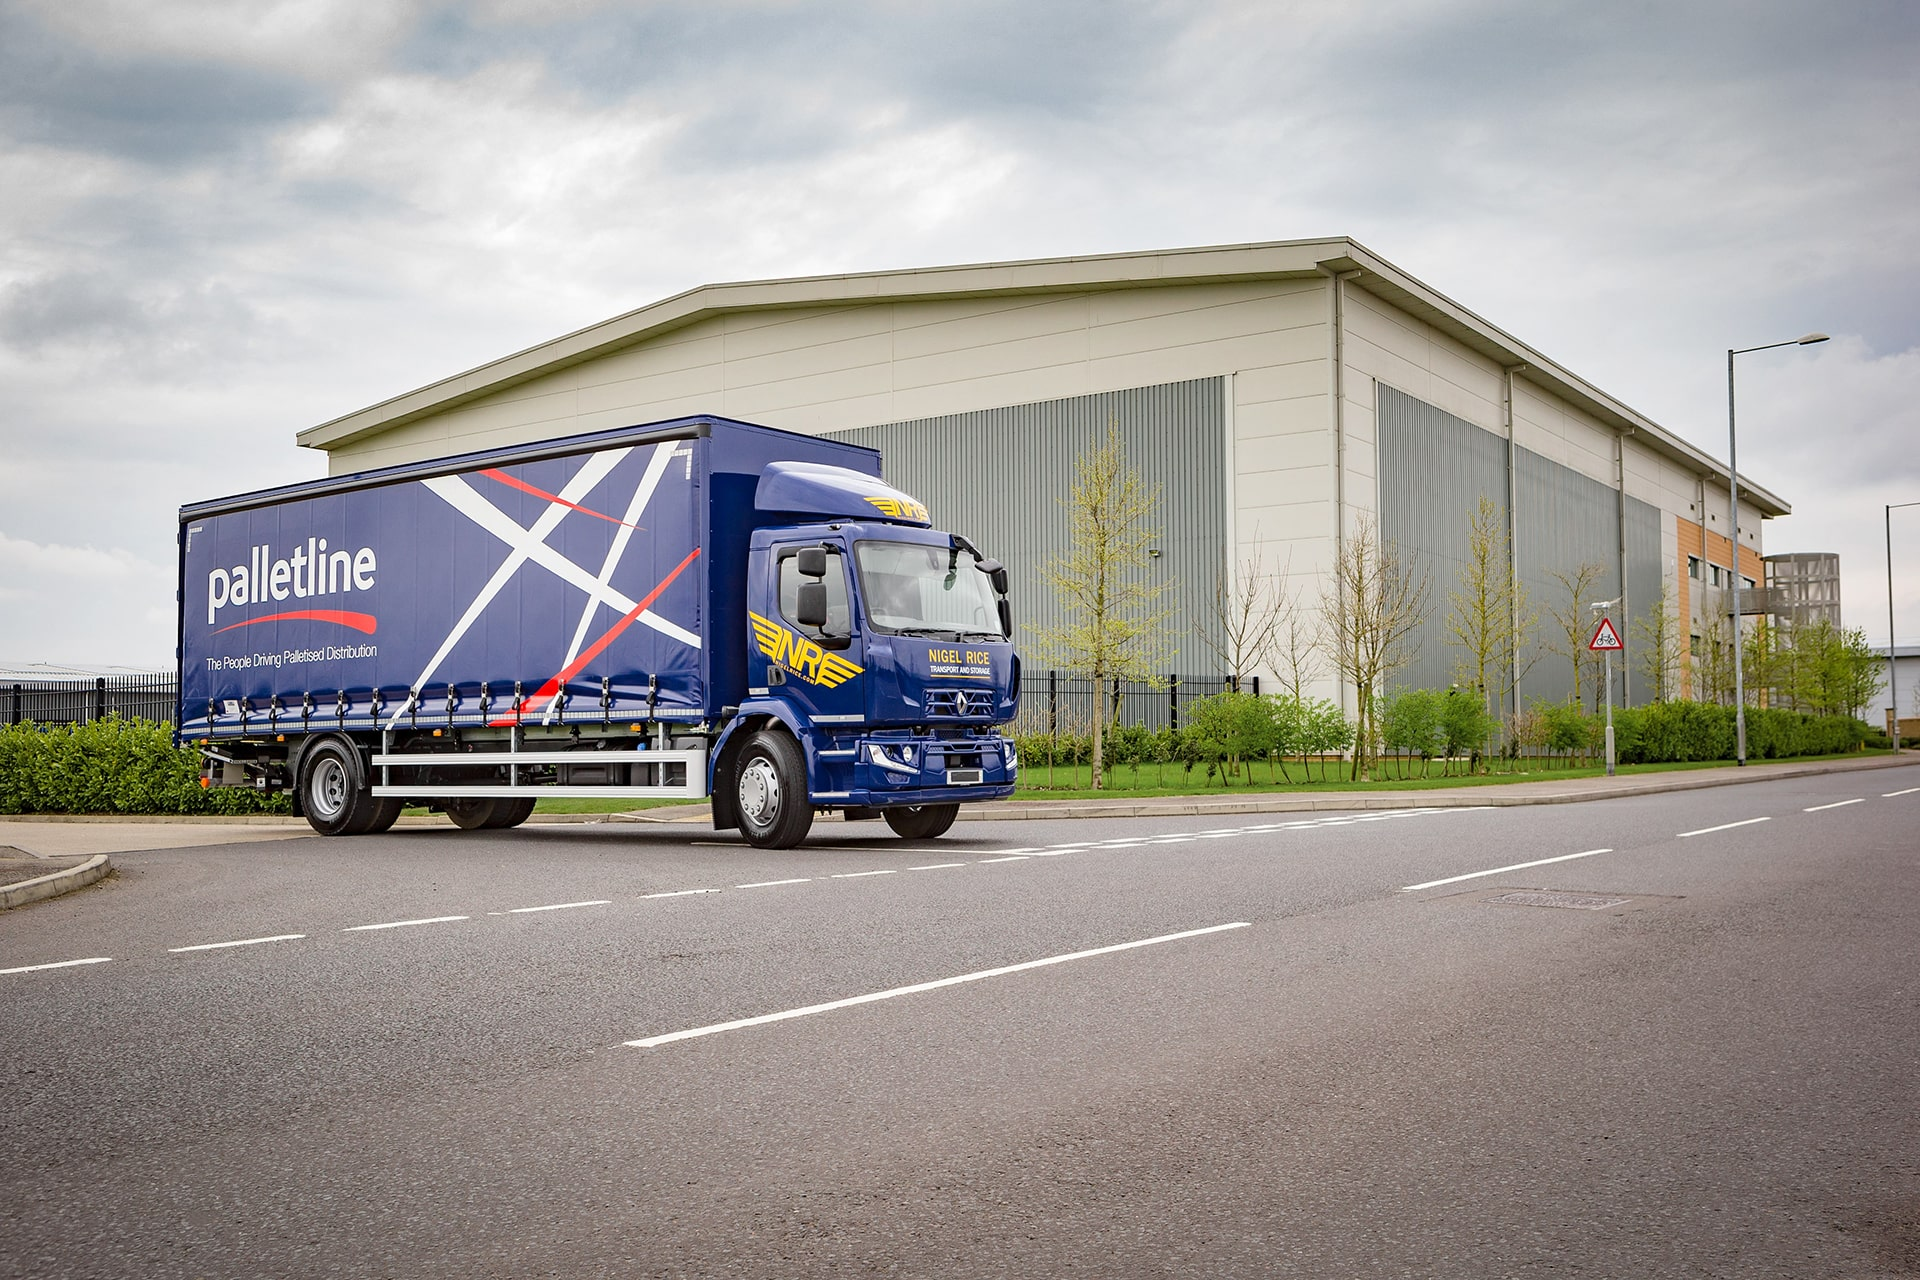 groupage hull, transport logistics hull, haulage hull